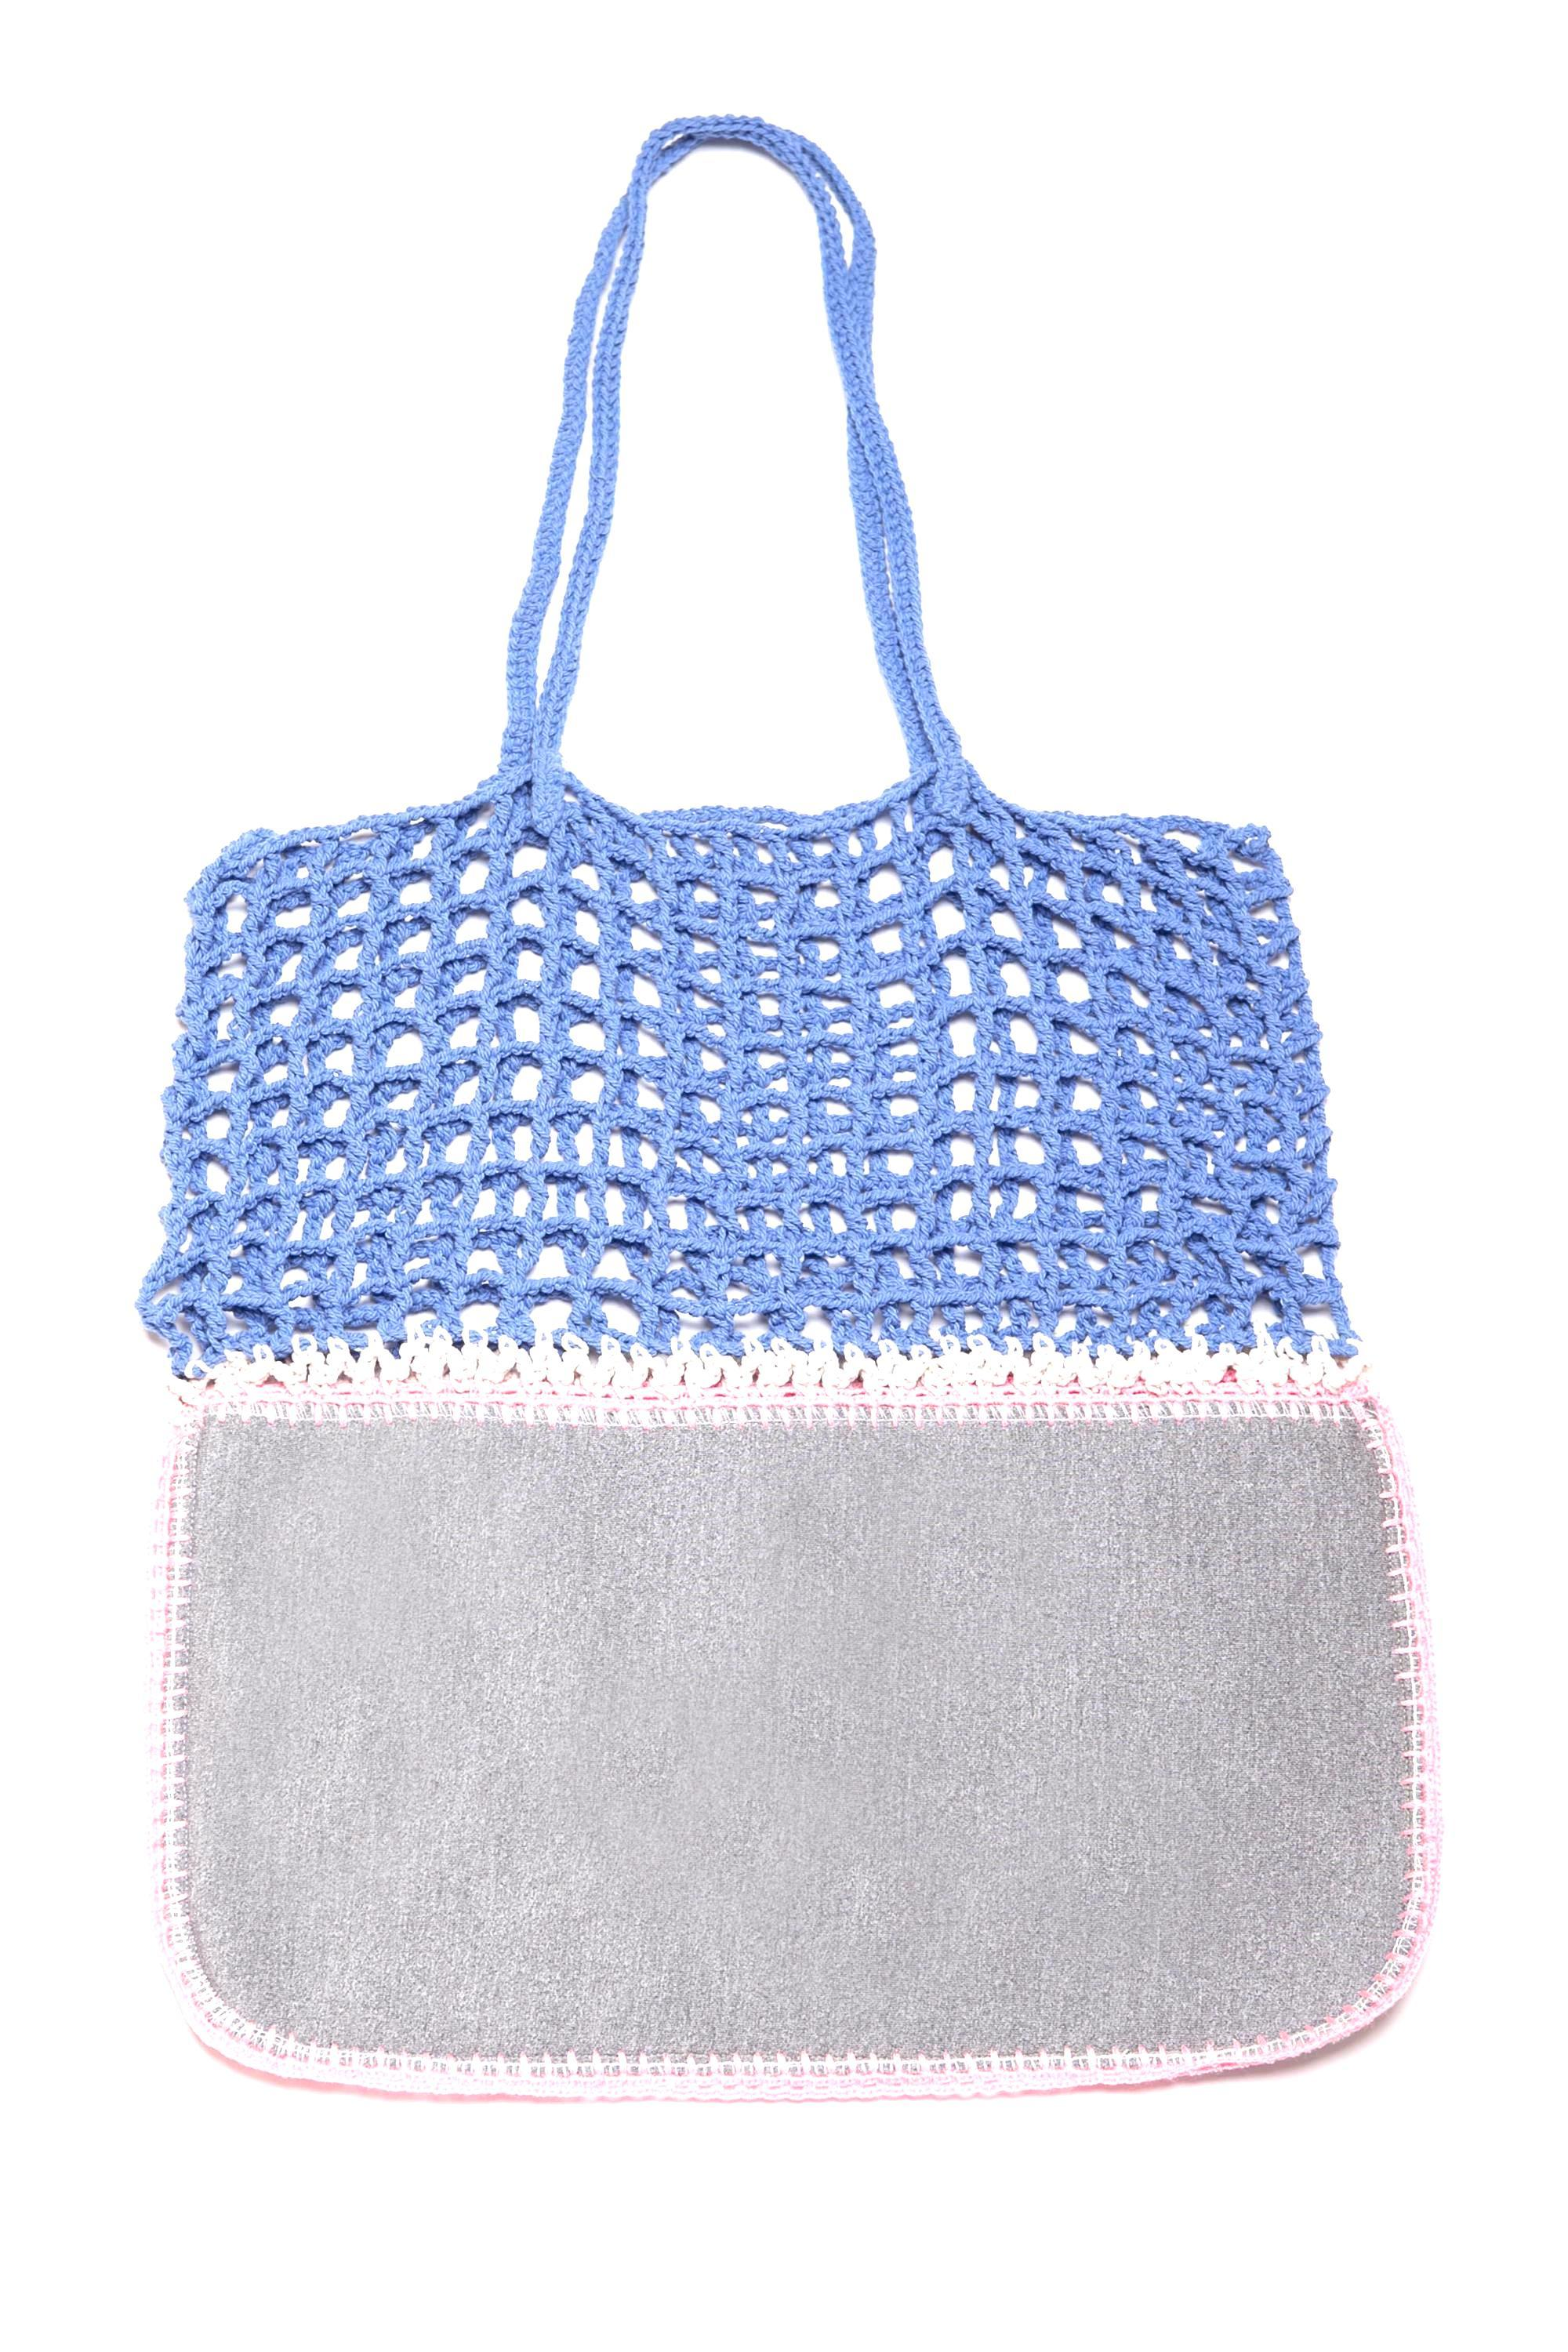 Gradie Grey and Blue Crochet and Neoprene Bag-Merrymetric Bags-Temples and Markets